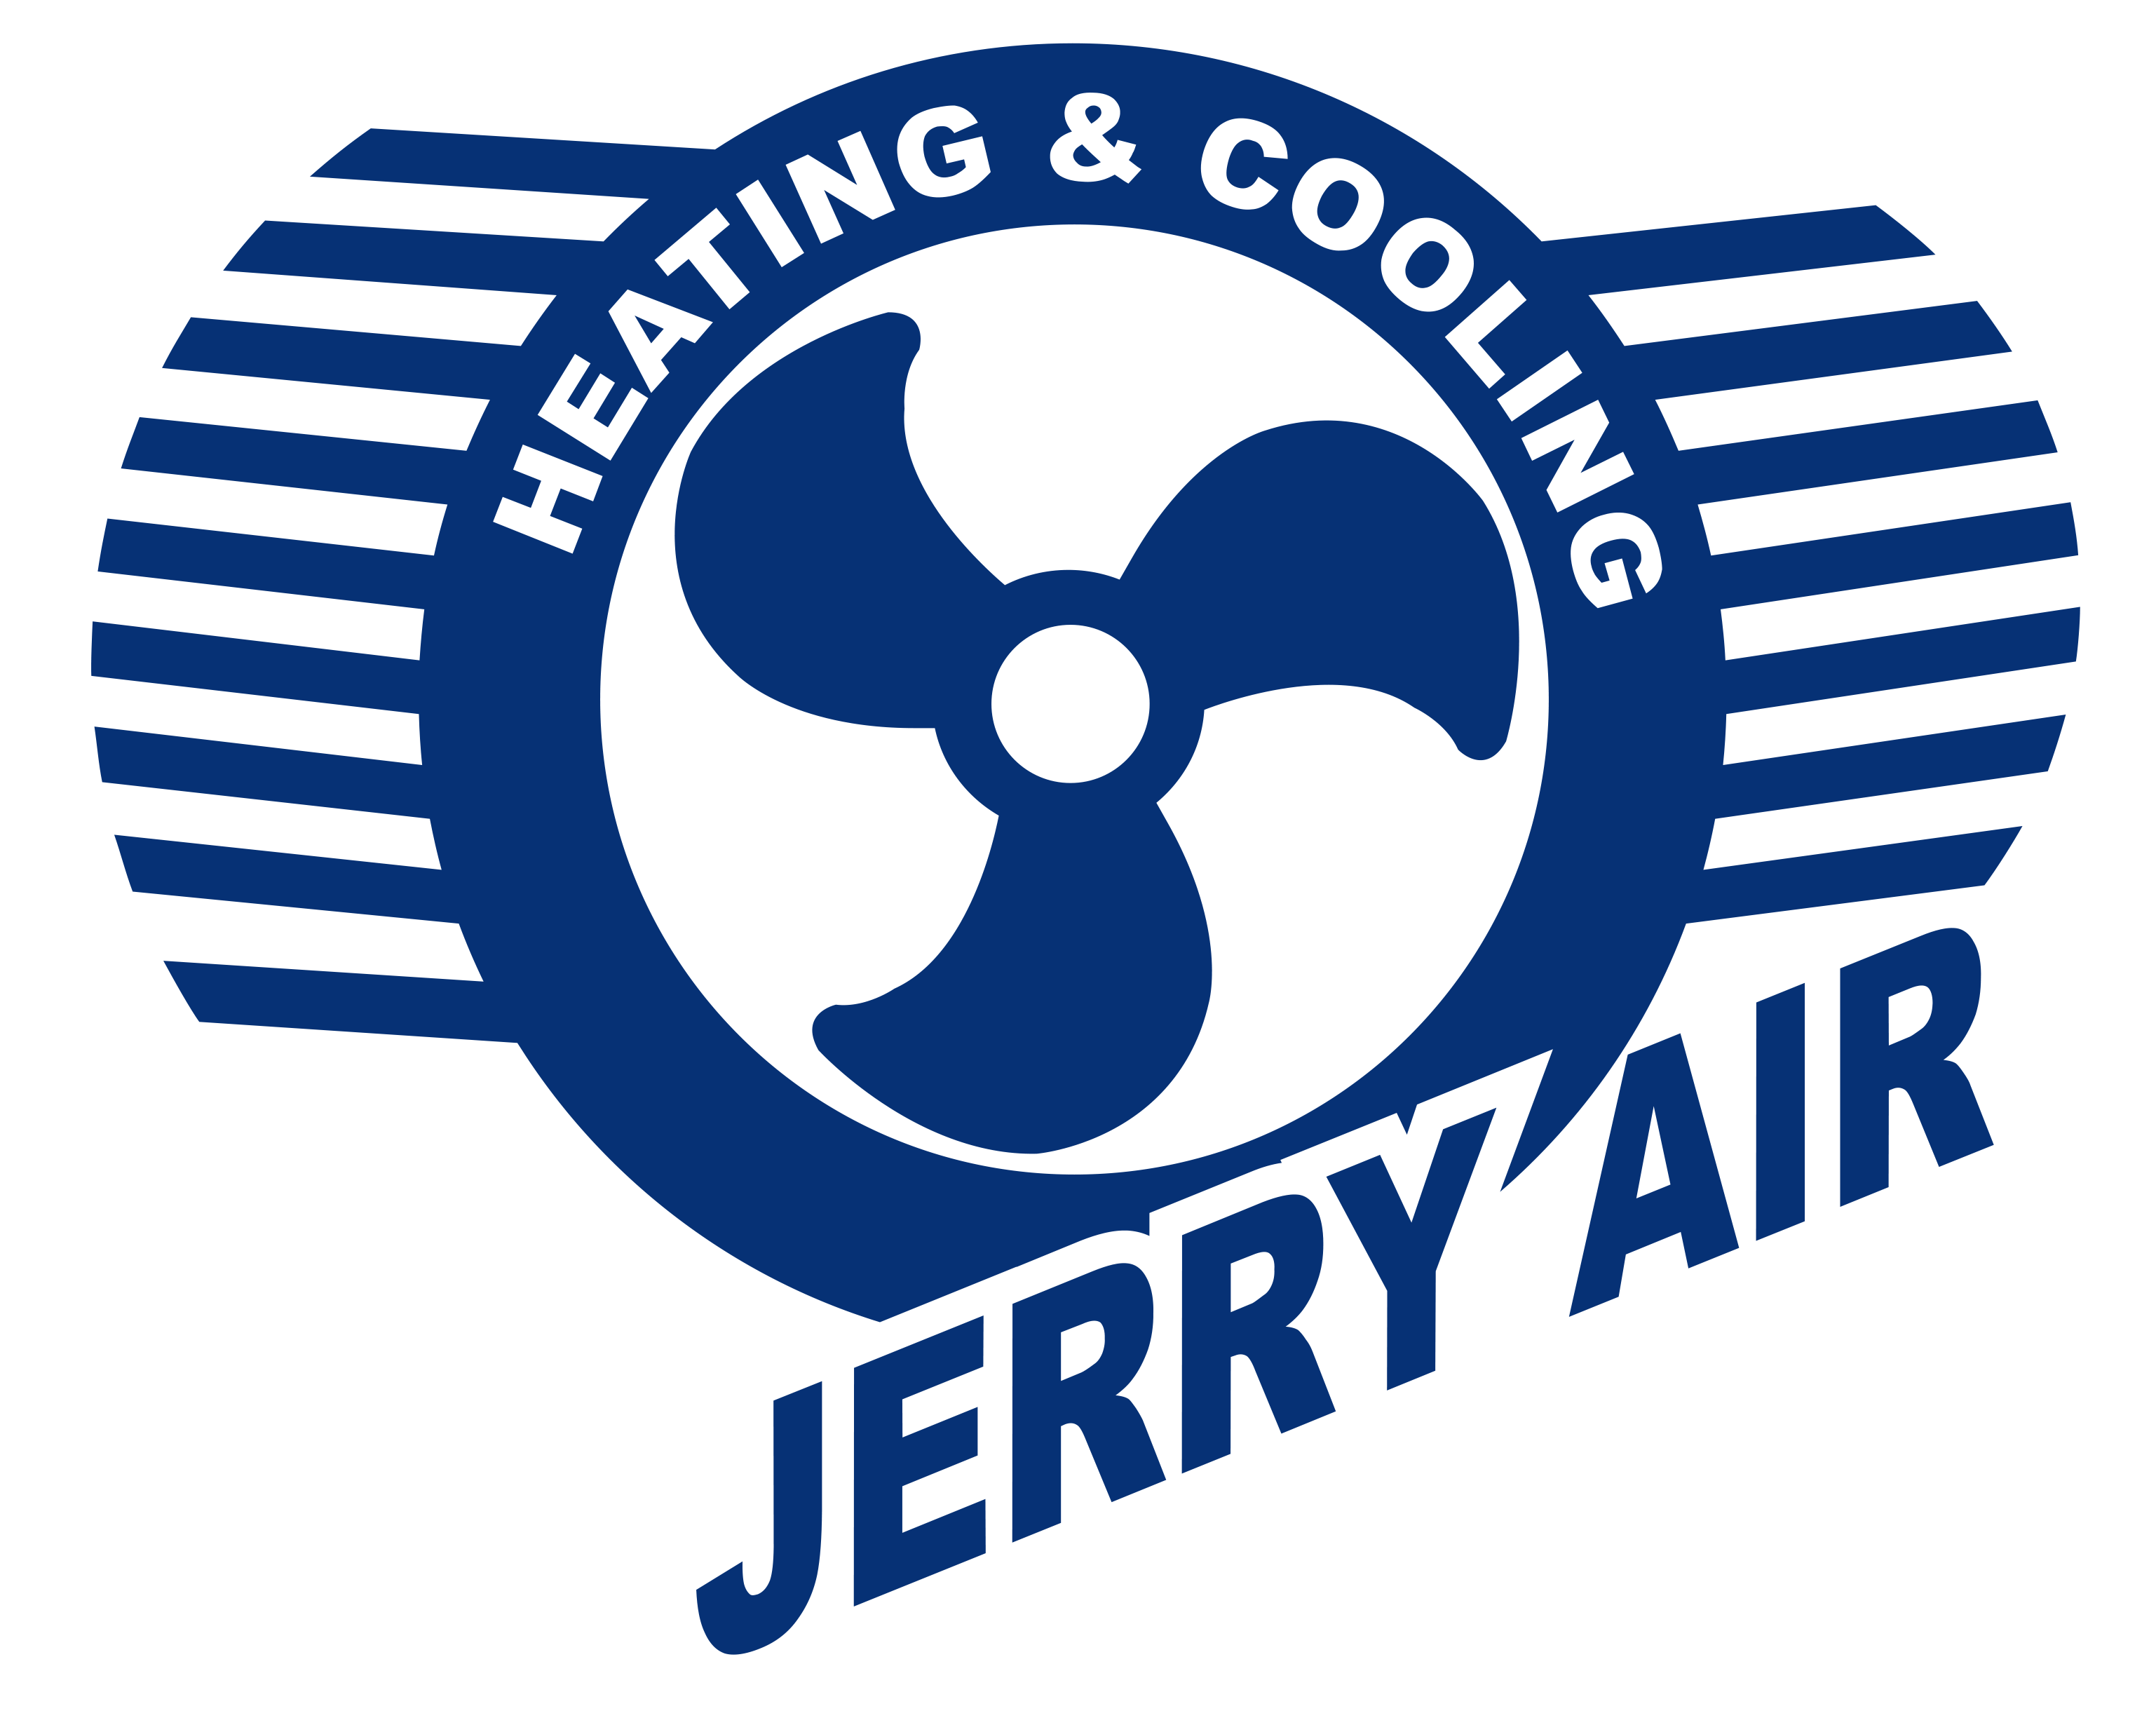 Jerry Air Heating and Cooling, LLC